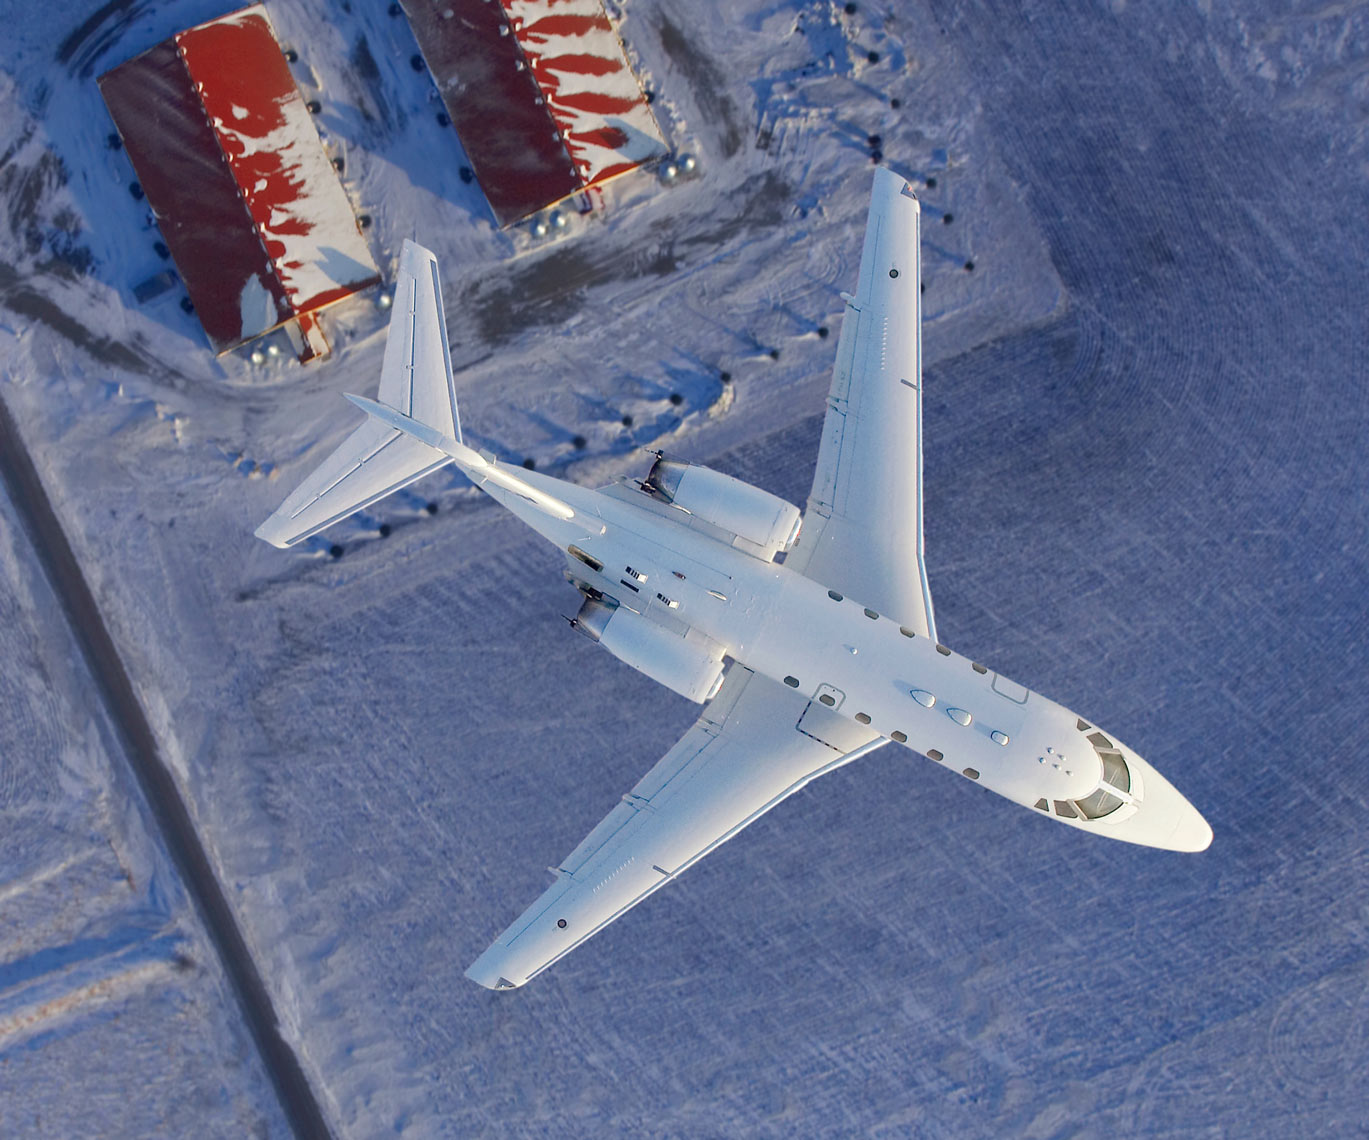 Jet flying over snow field/red barns/aviation photo